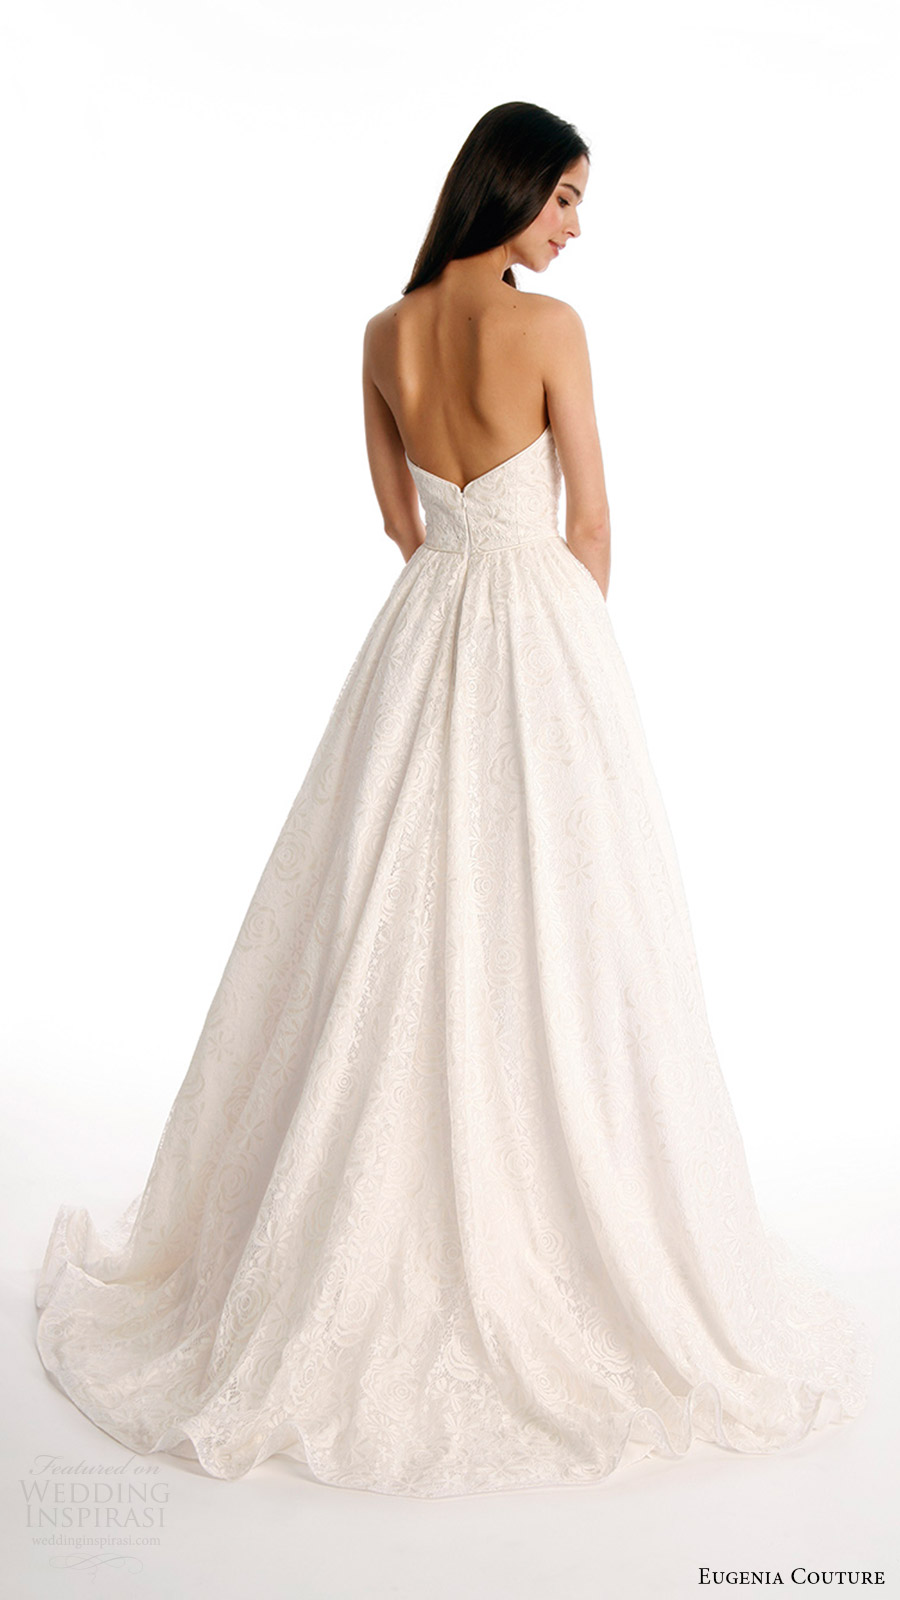 eugenia couture joy bridal spring 2017 strapless sweetheart ball gown wedding dress (beverly) bv train